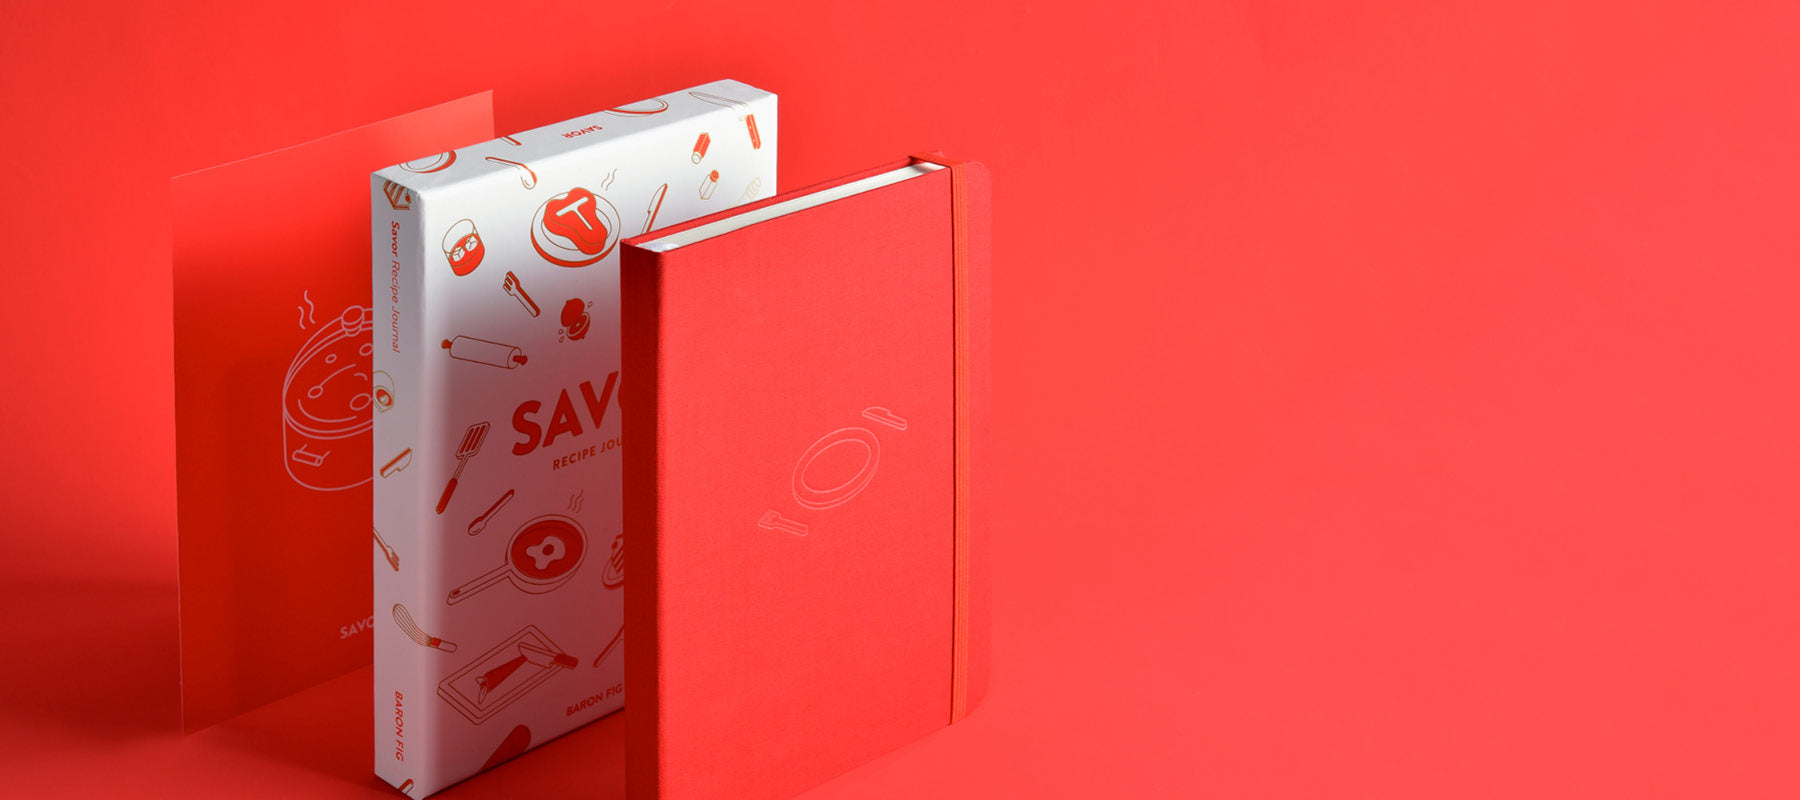 Savor journal, box, box insert